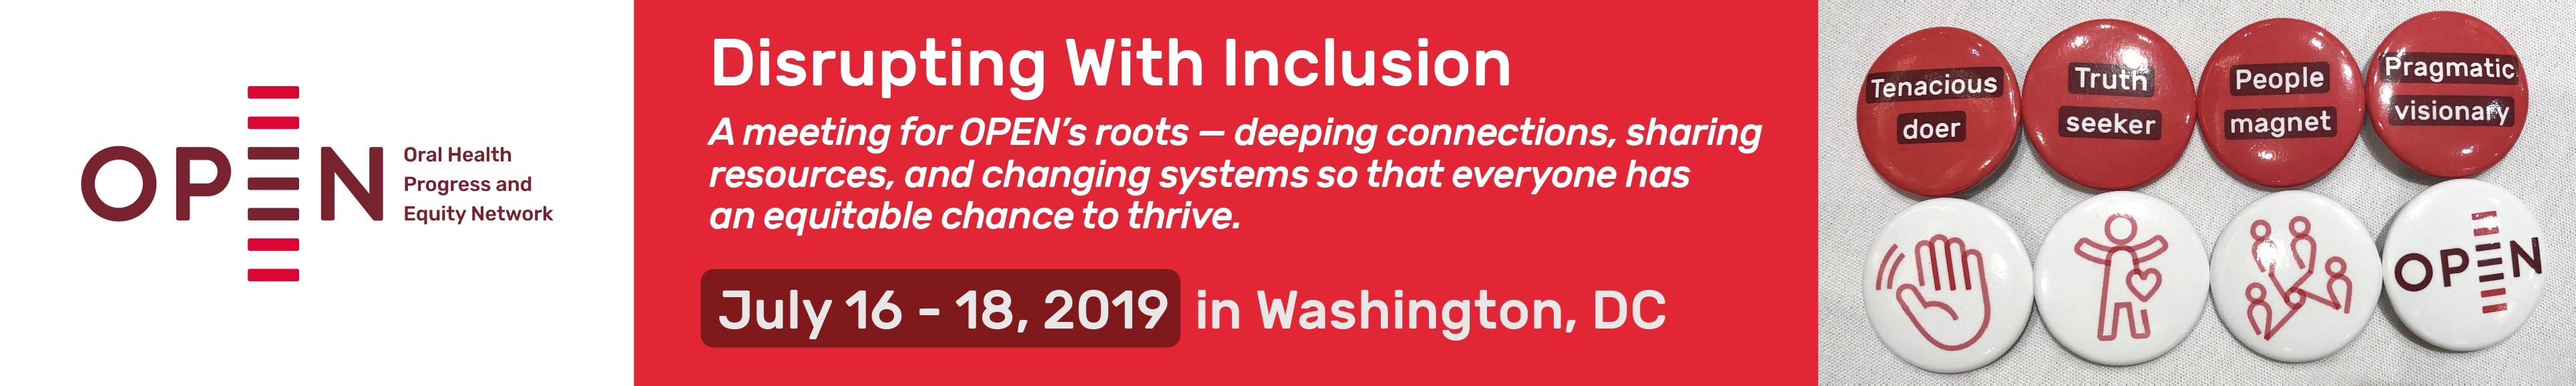 Disrupting With Inclusion: The OPEN 2019 Grassroots Summit